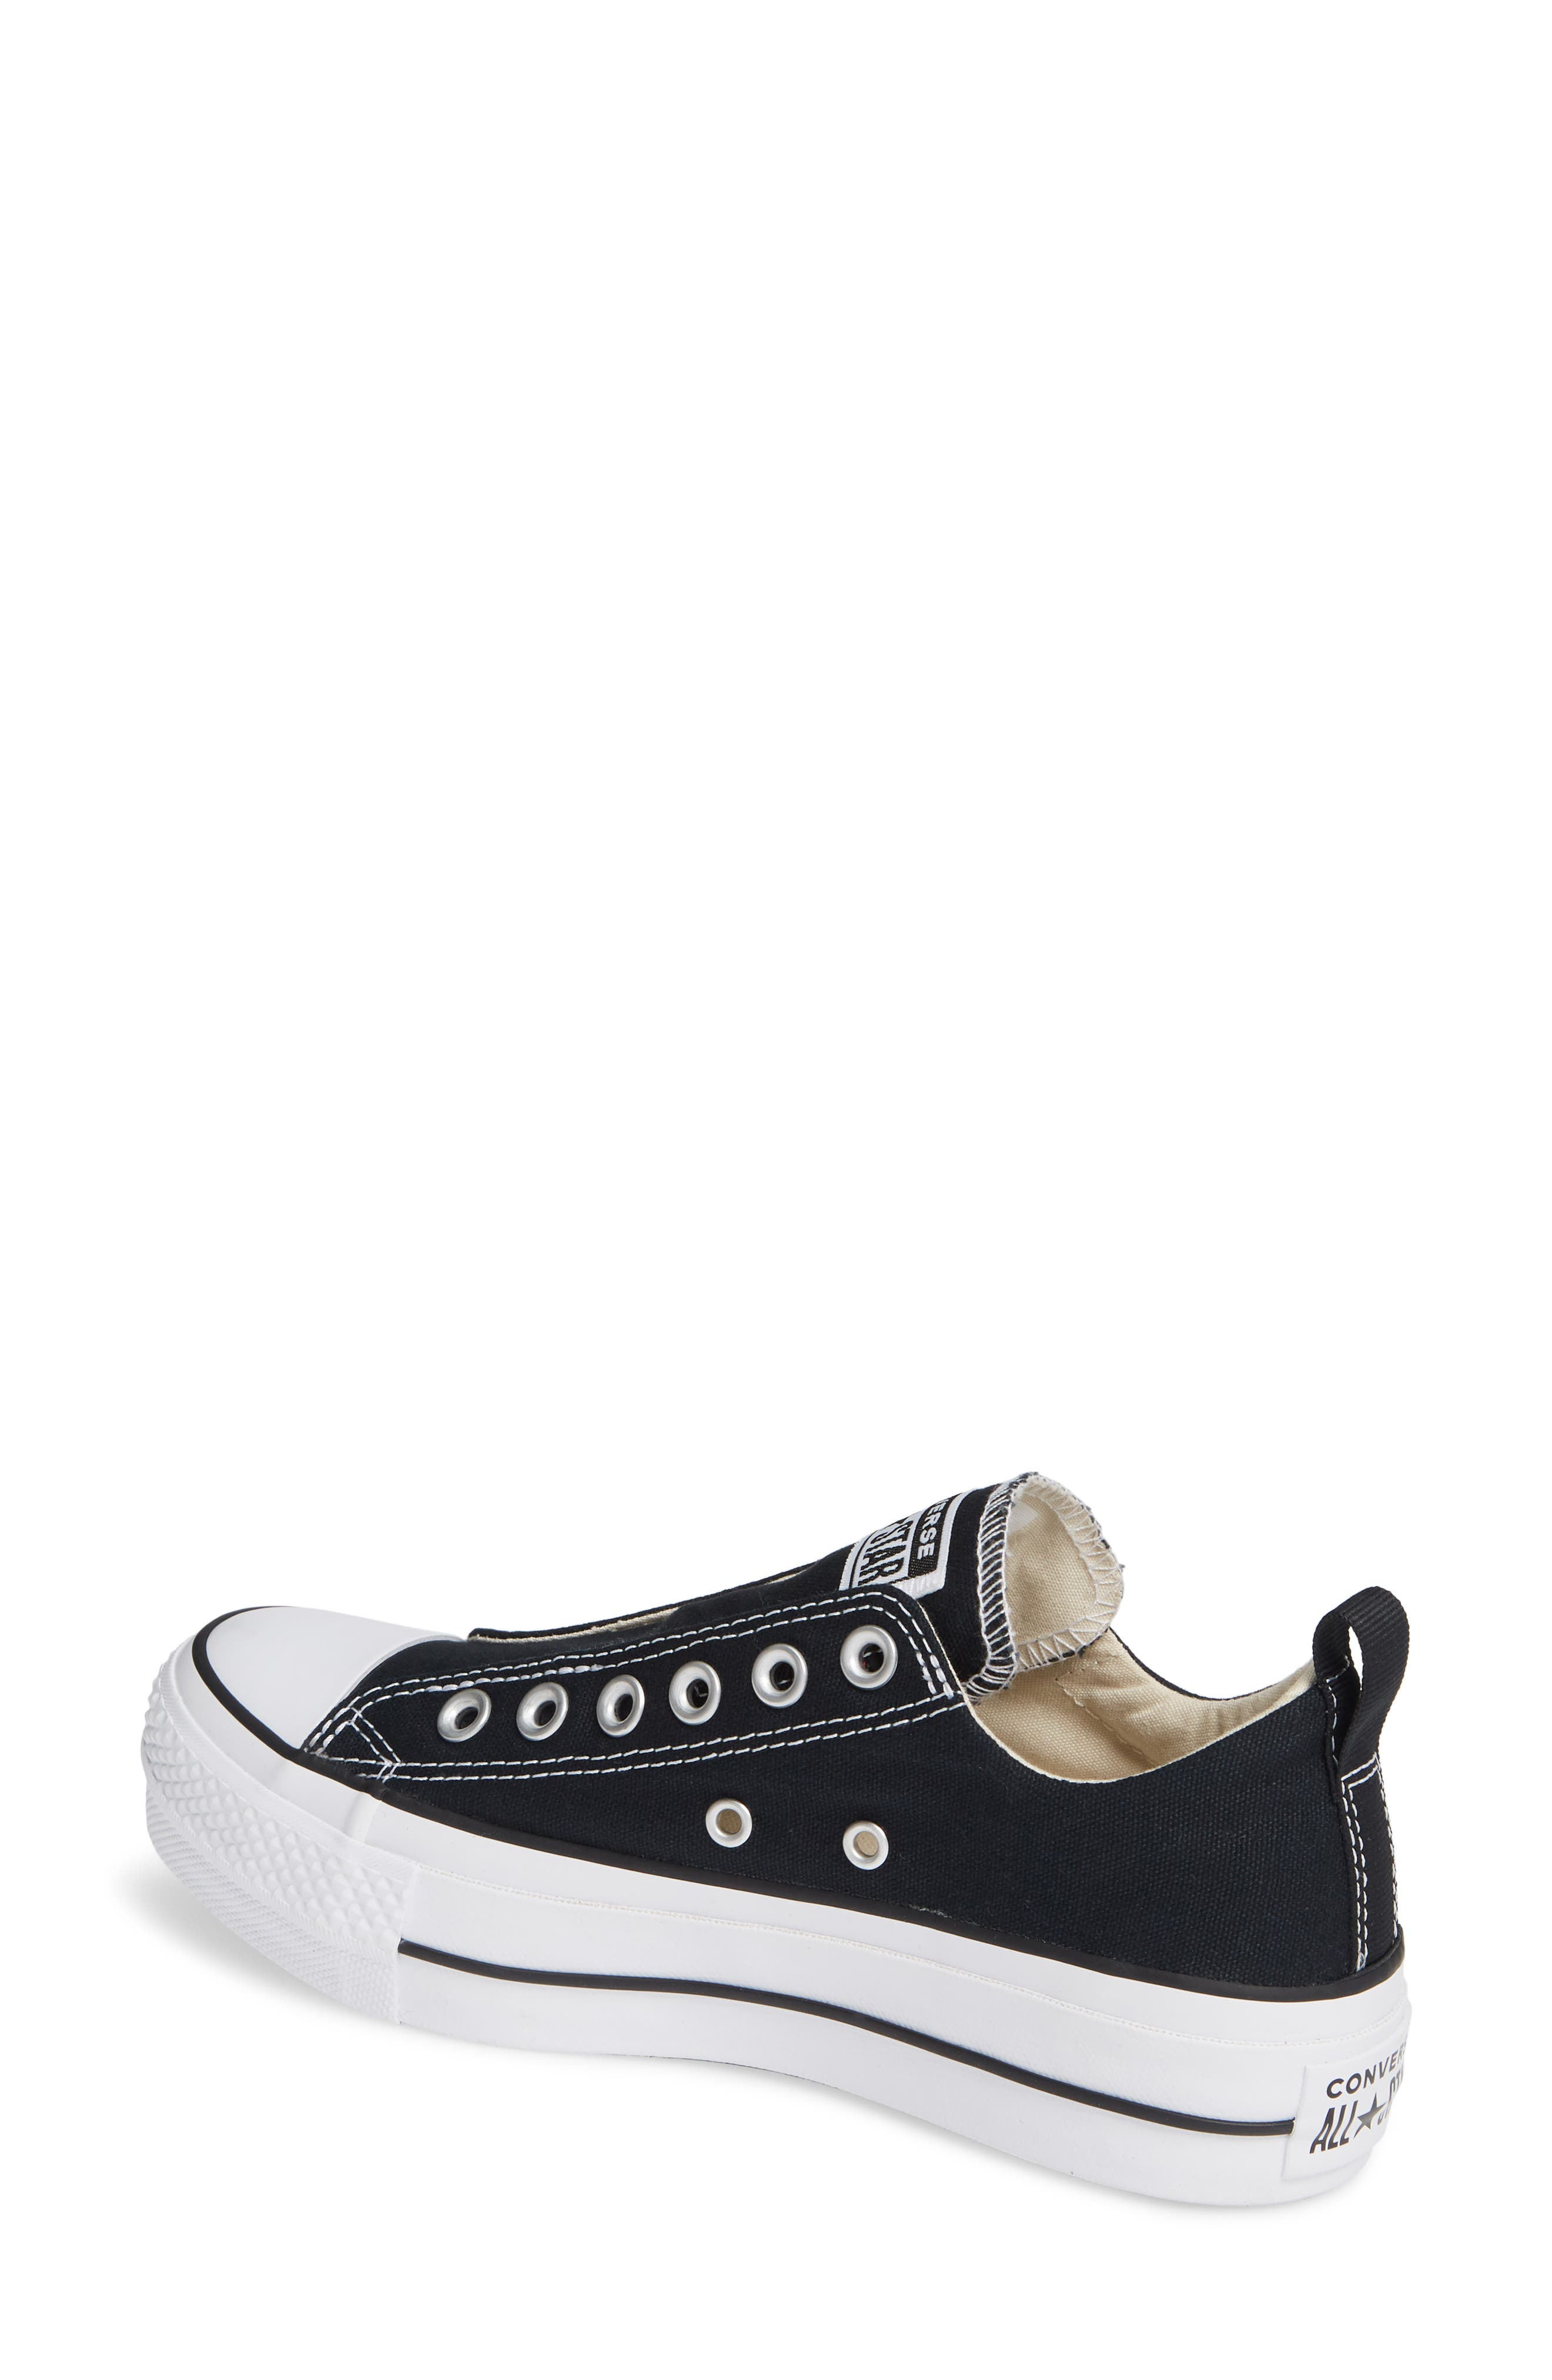 CONVERSE, Chuck Taylor<sup>®</sup> All Star<sup>®</sup> Low Top Sneaker, Alternate thumbnail 2, color, BLACK/ WHITE/ BLACK